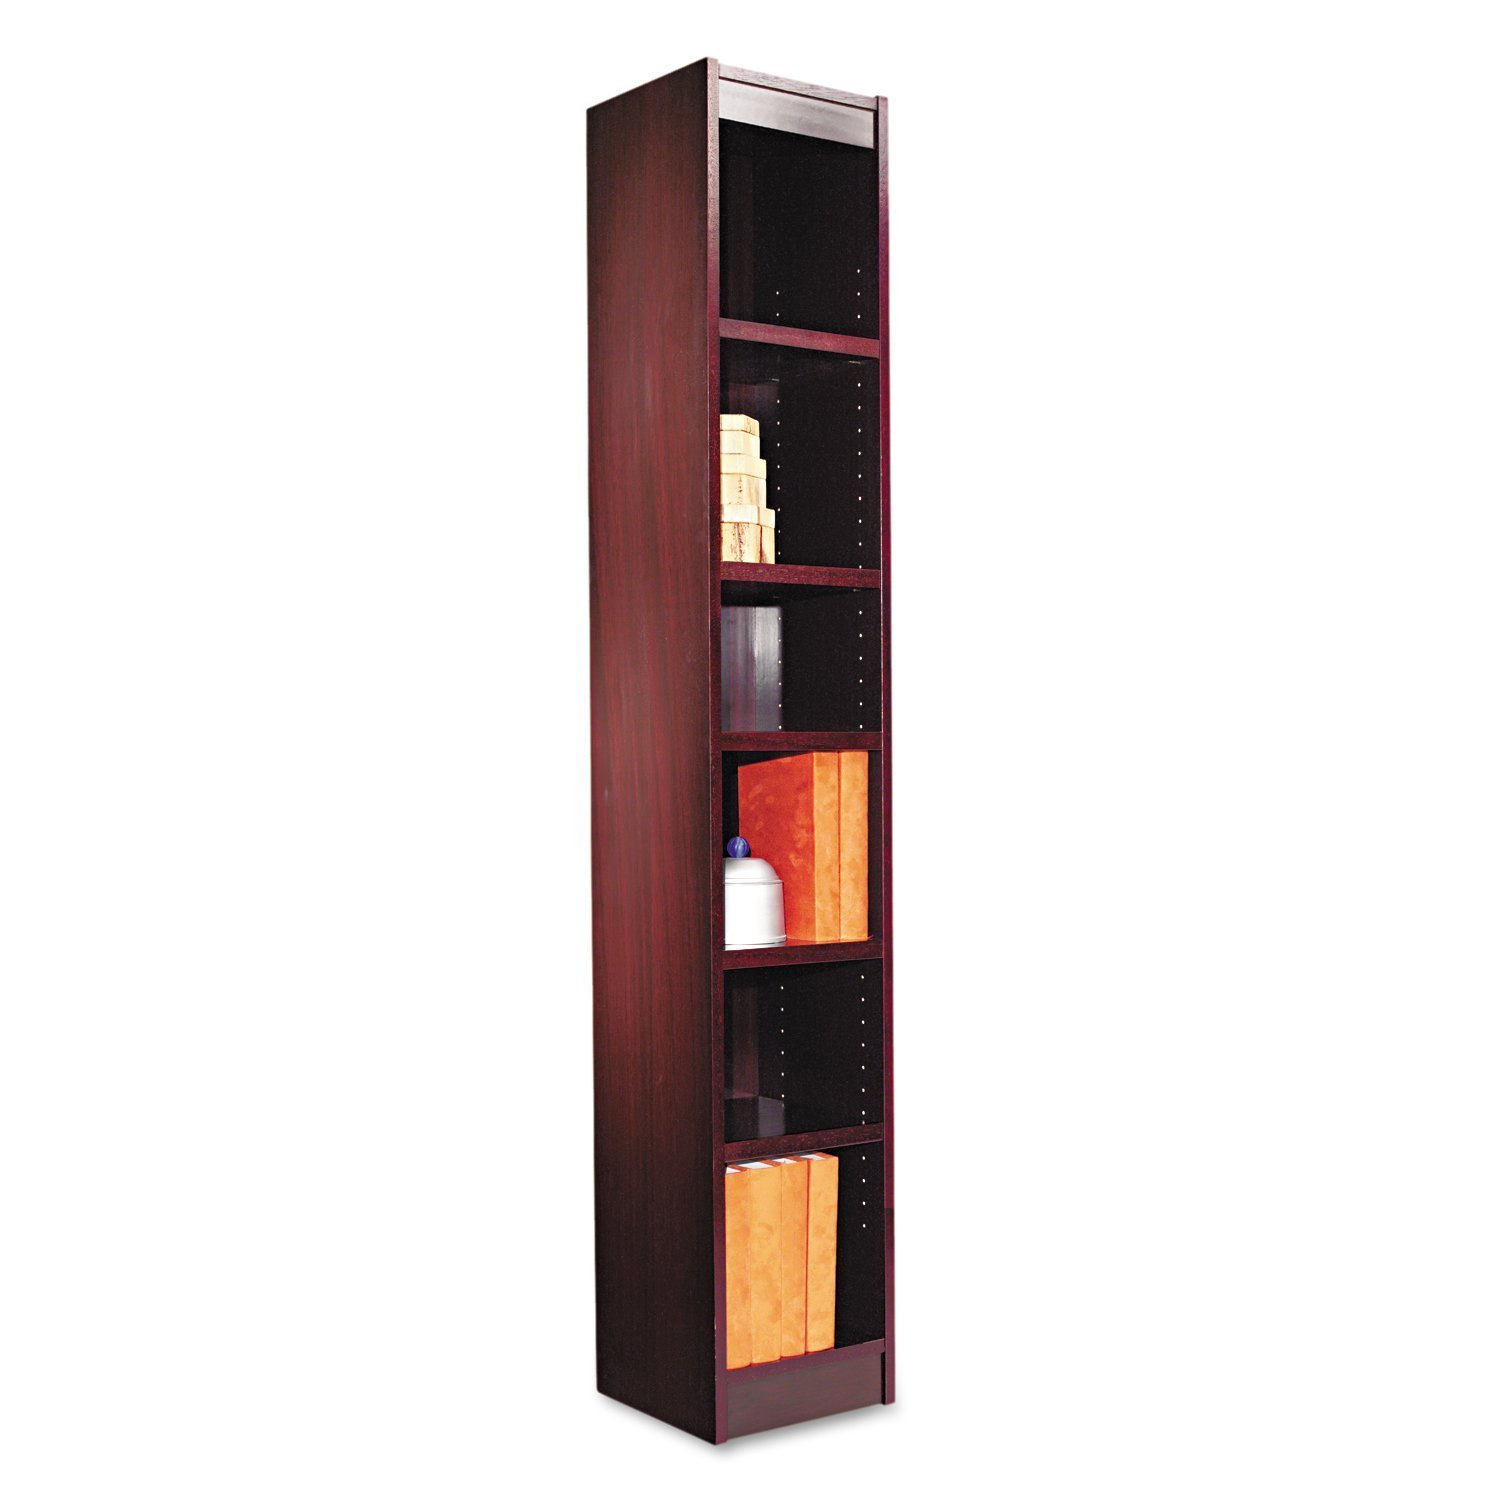 Top 15 narrow bookshelf and bookcase collection How deep should a bookshelf be